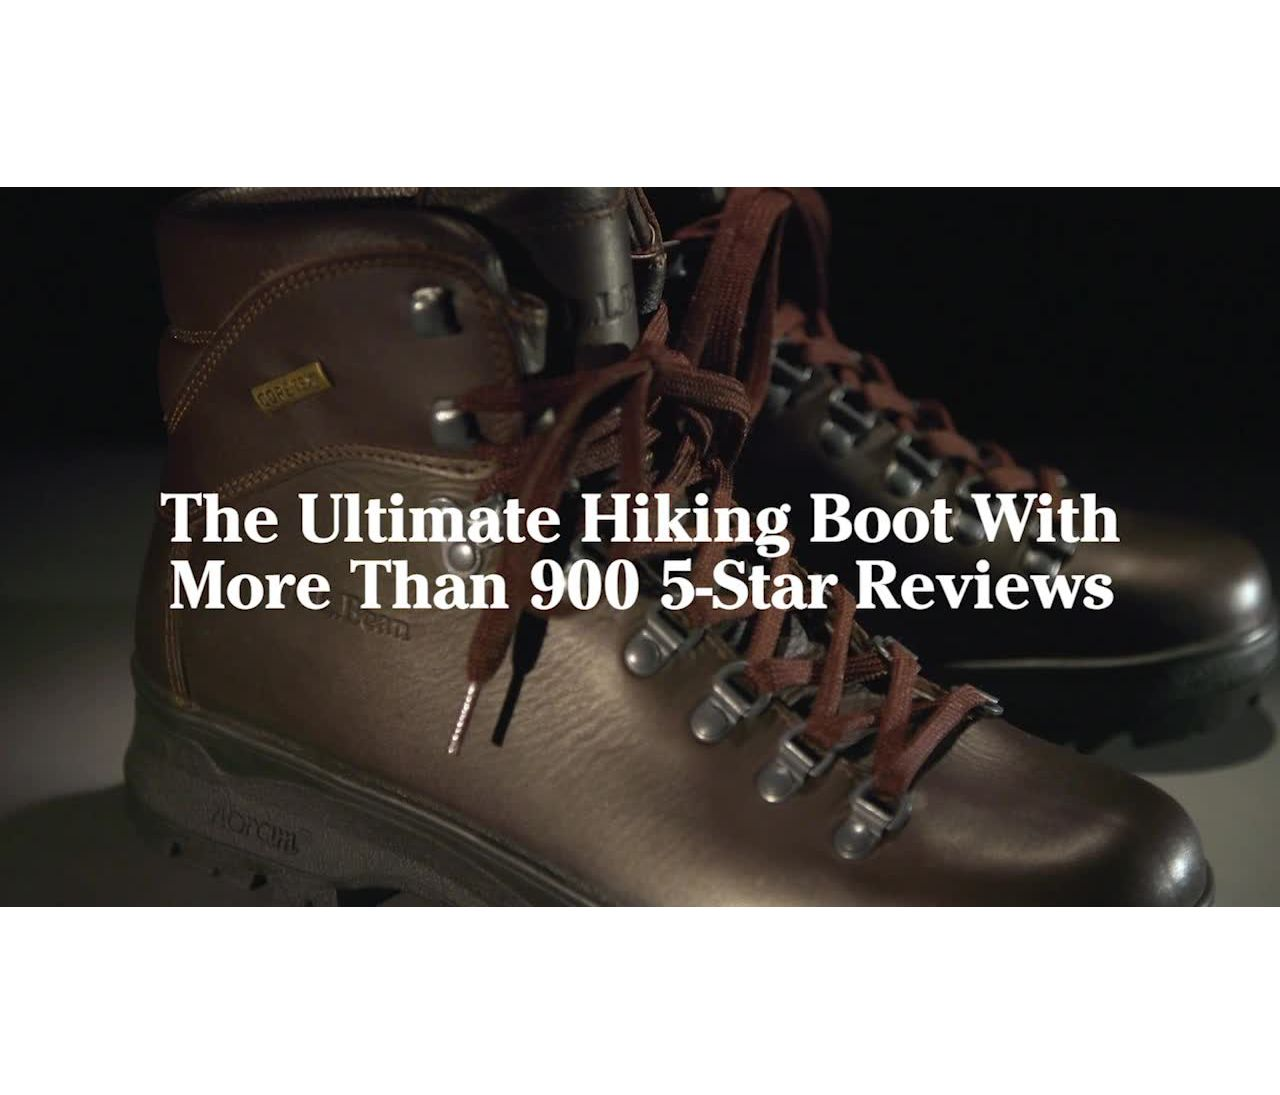 Video: Cresta Hiking Boot